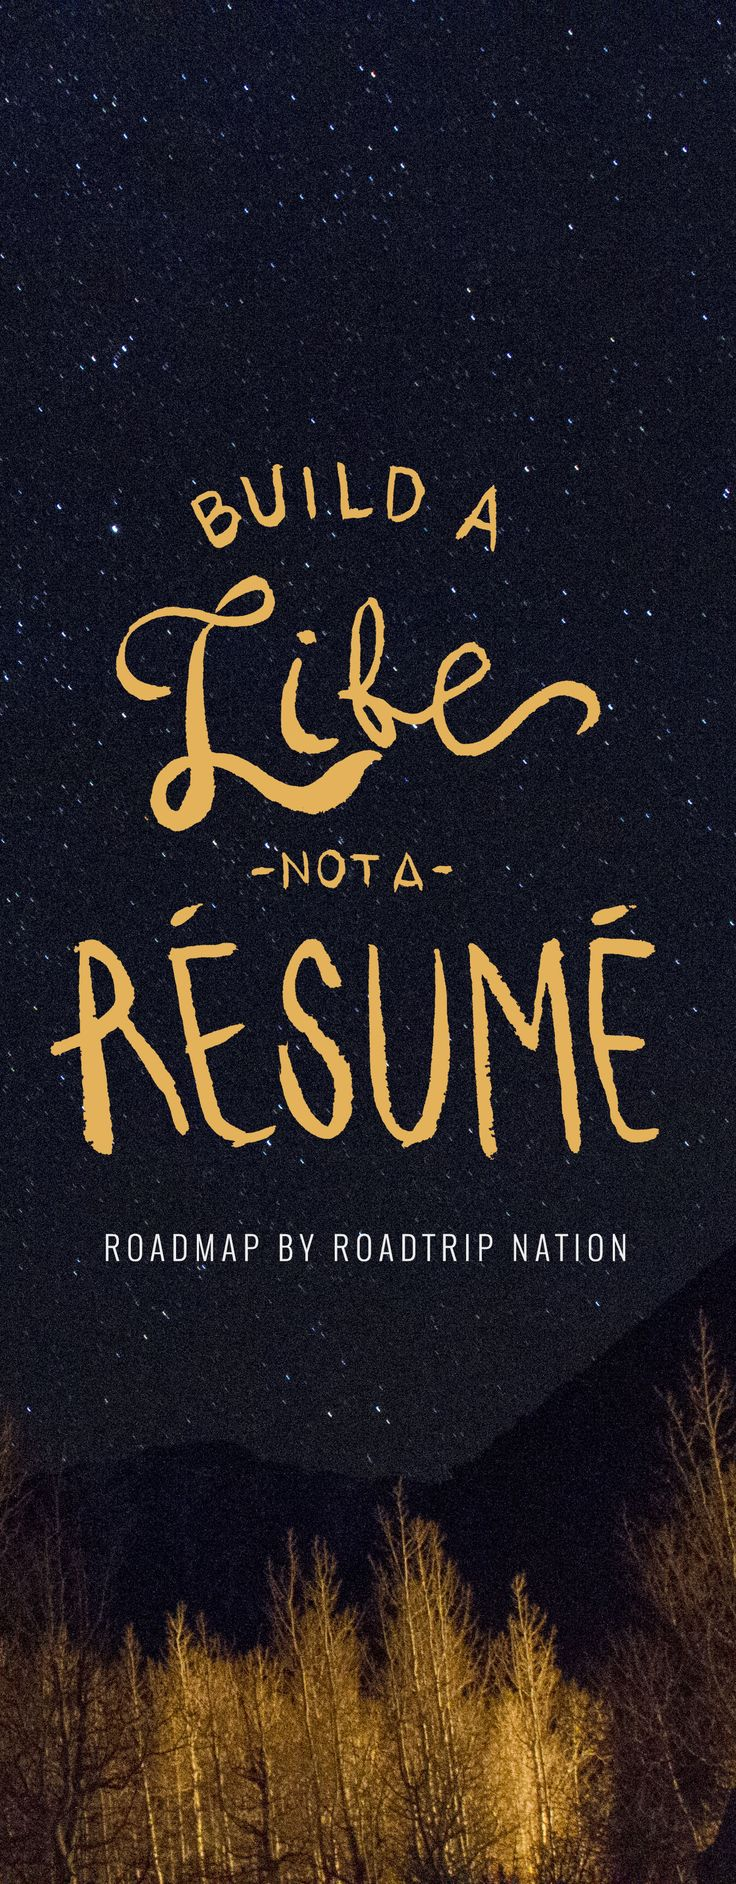 key words for resume%0A Build a life not a resume   Roadmap by Roadtrip Nation